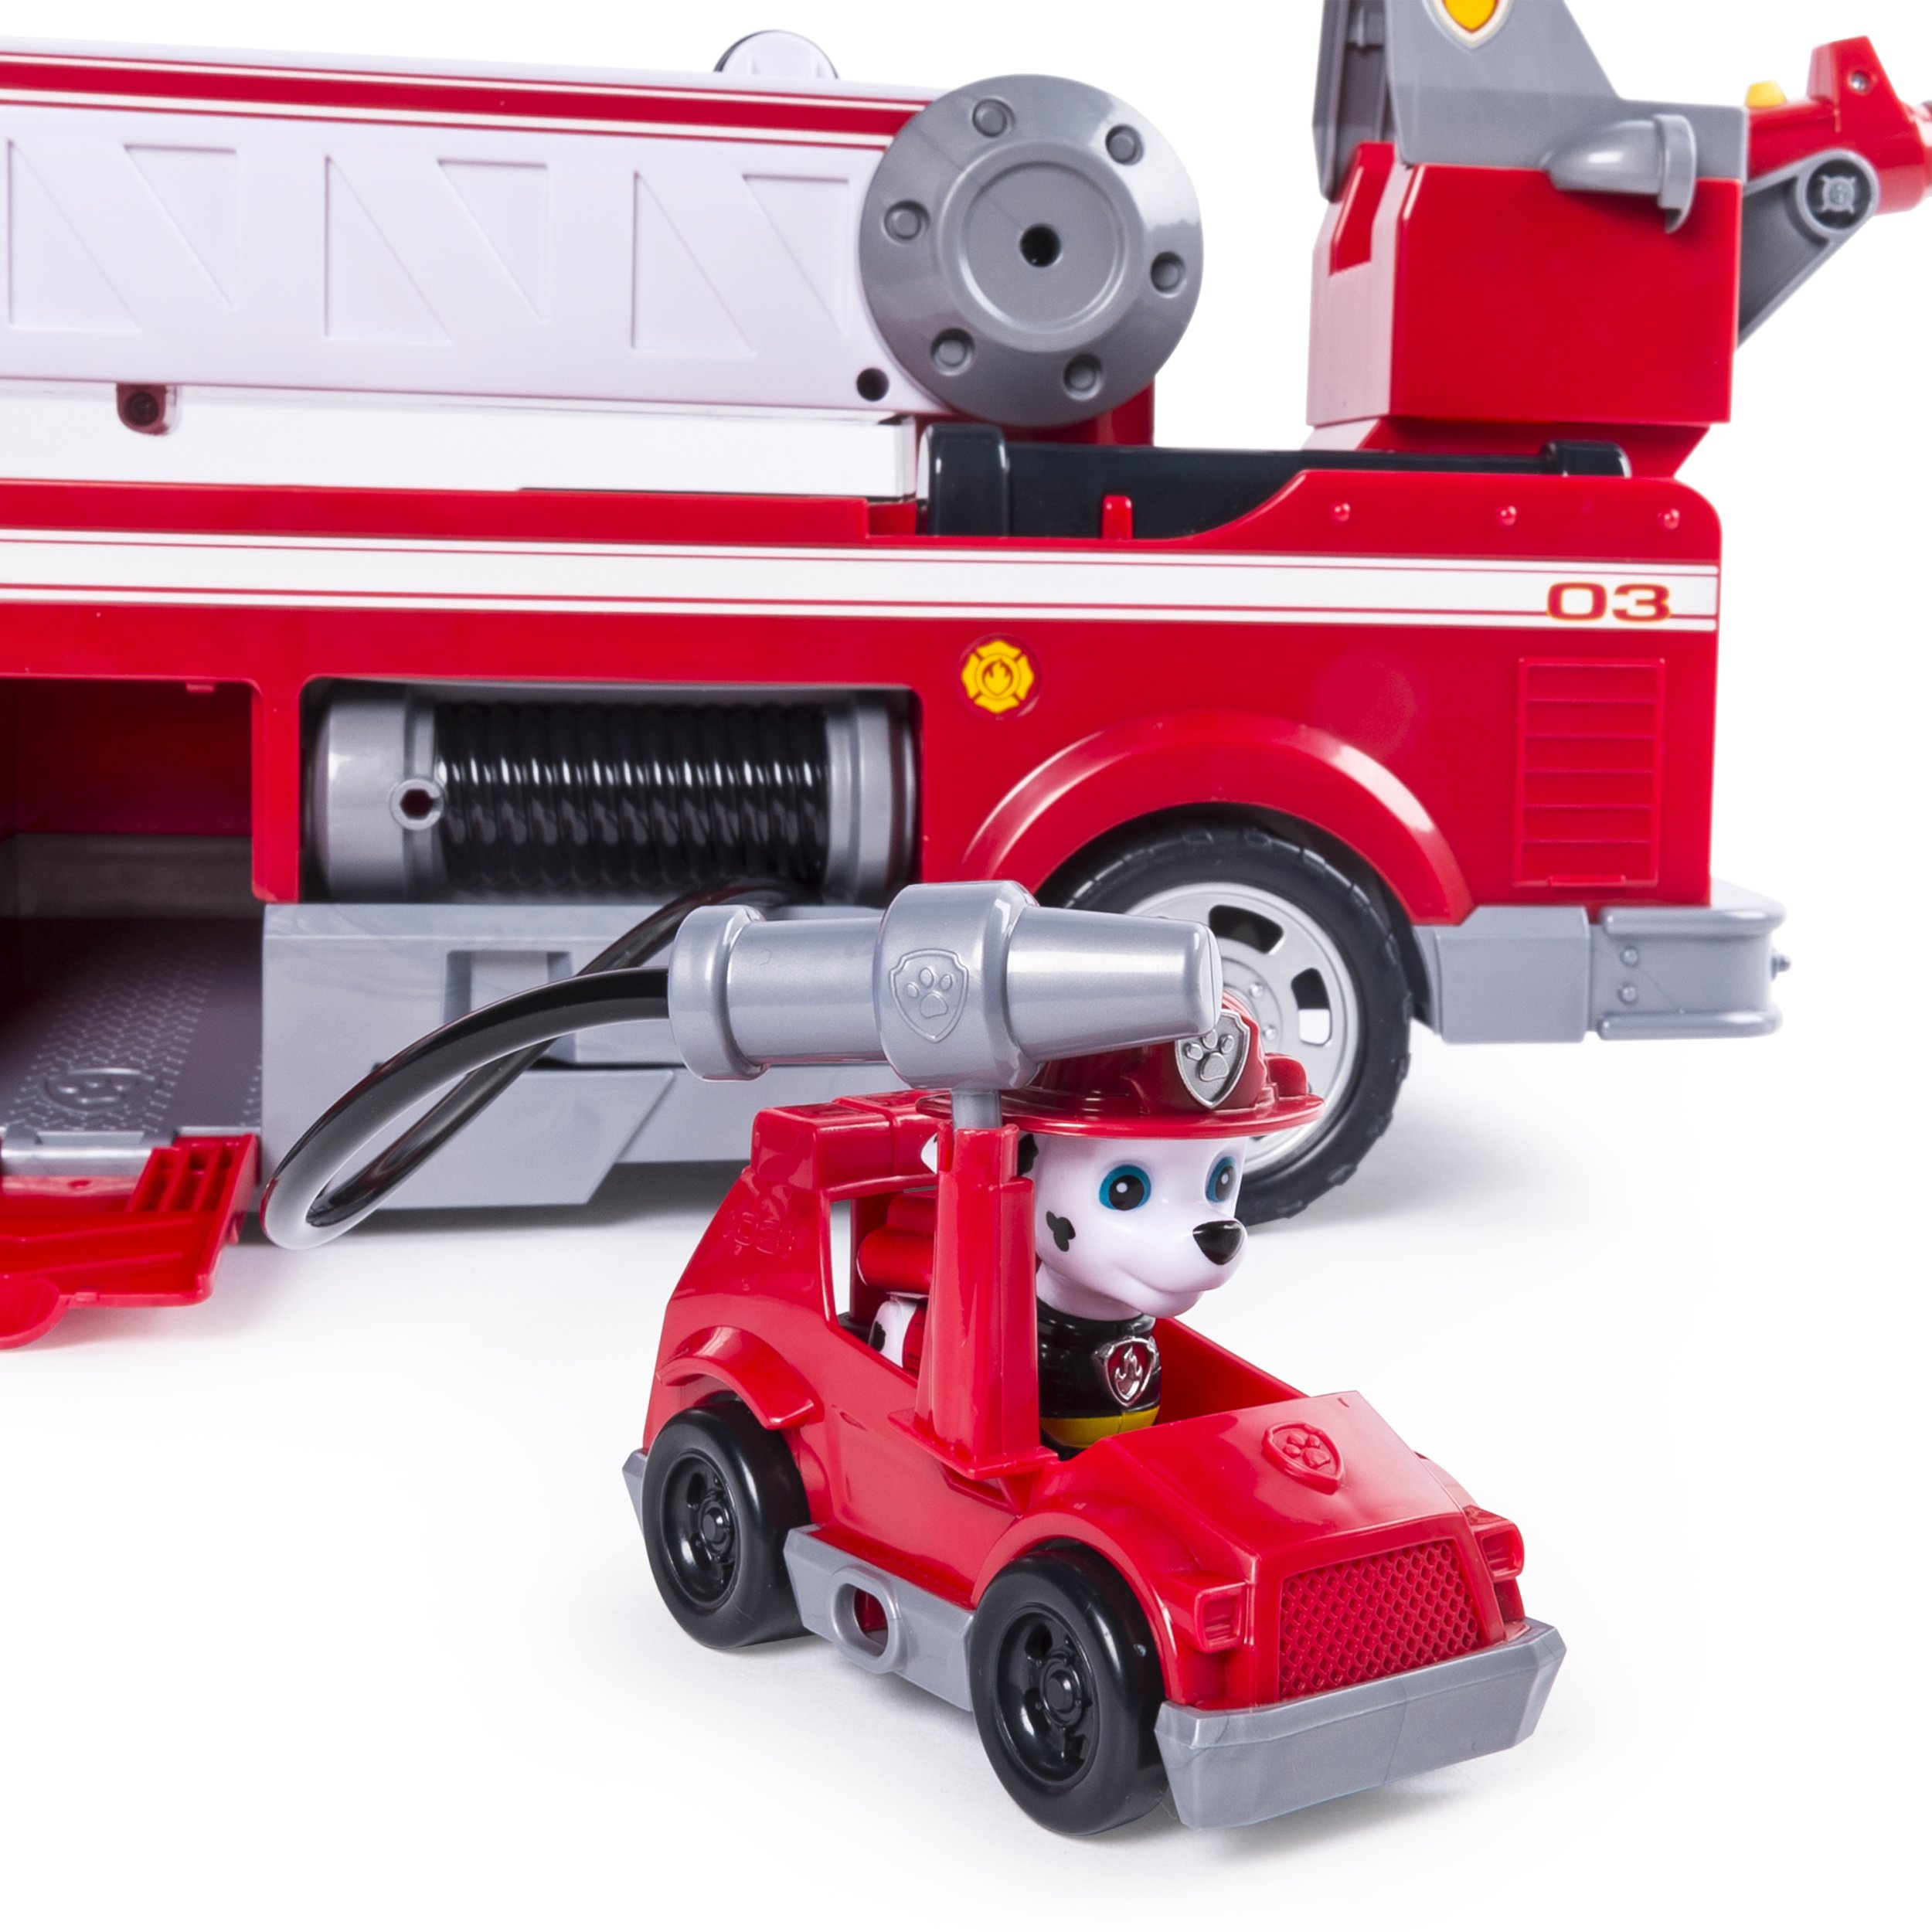 PAW Patrol - Ultimate Rescue Fire Truck with Extendable 2 ft. Tall Ladder, for Ages 3 and Up by Paw Patrol (Image #7)